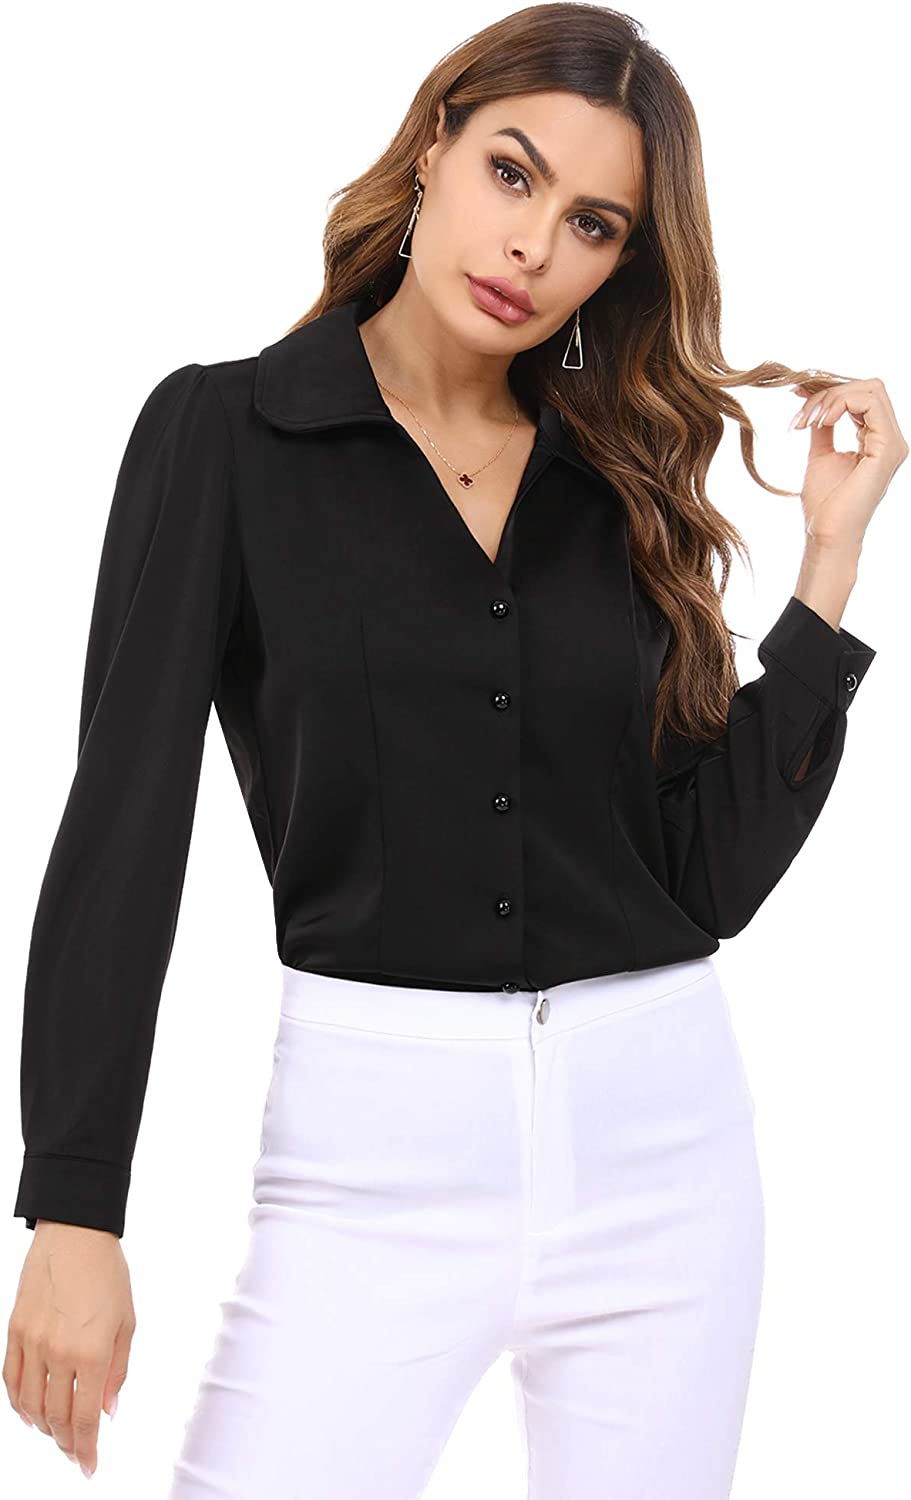 Irevial Women's Split V Neck Button Down Henley Shirts Long Sleeve Satin Casual Blouse Tops